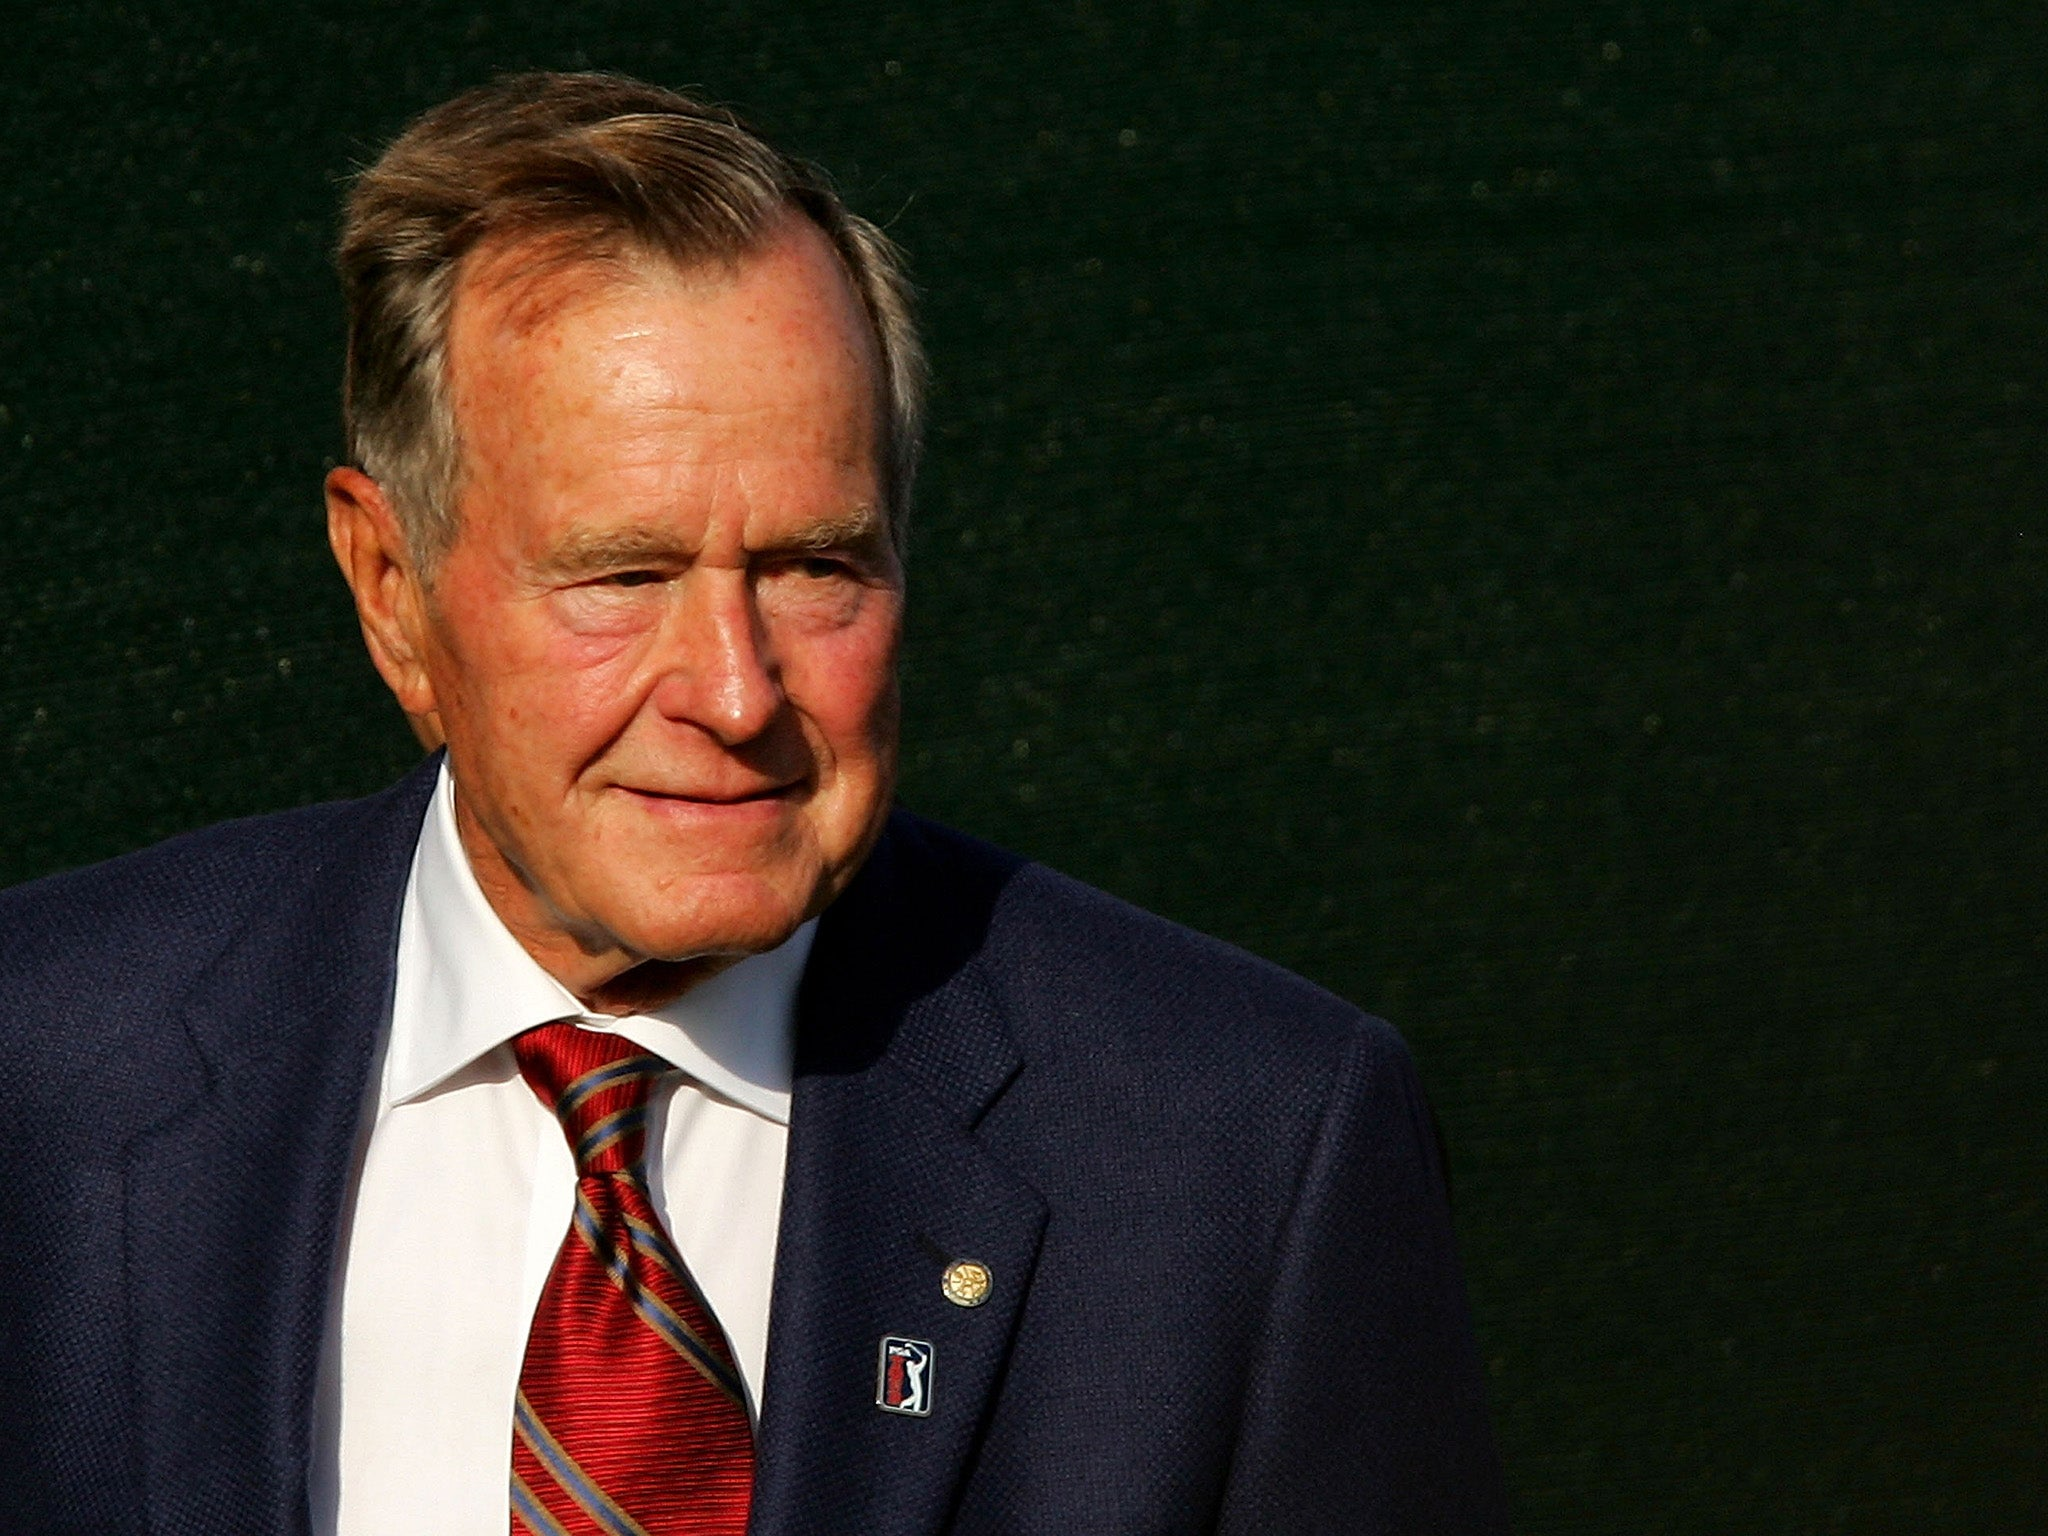 George Hw Bush Wwii Pilot Oilman Ambassador And Founder Of The